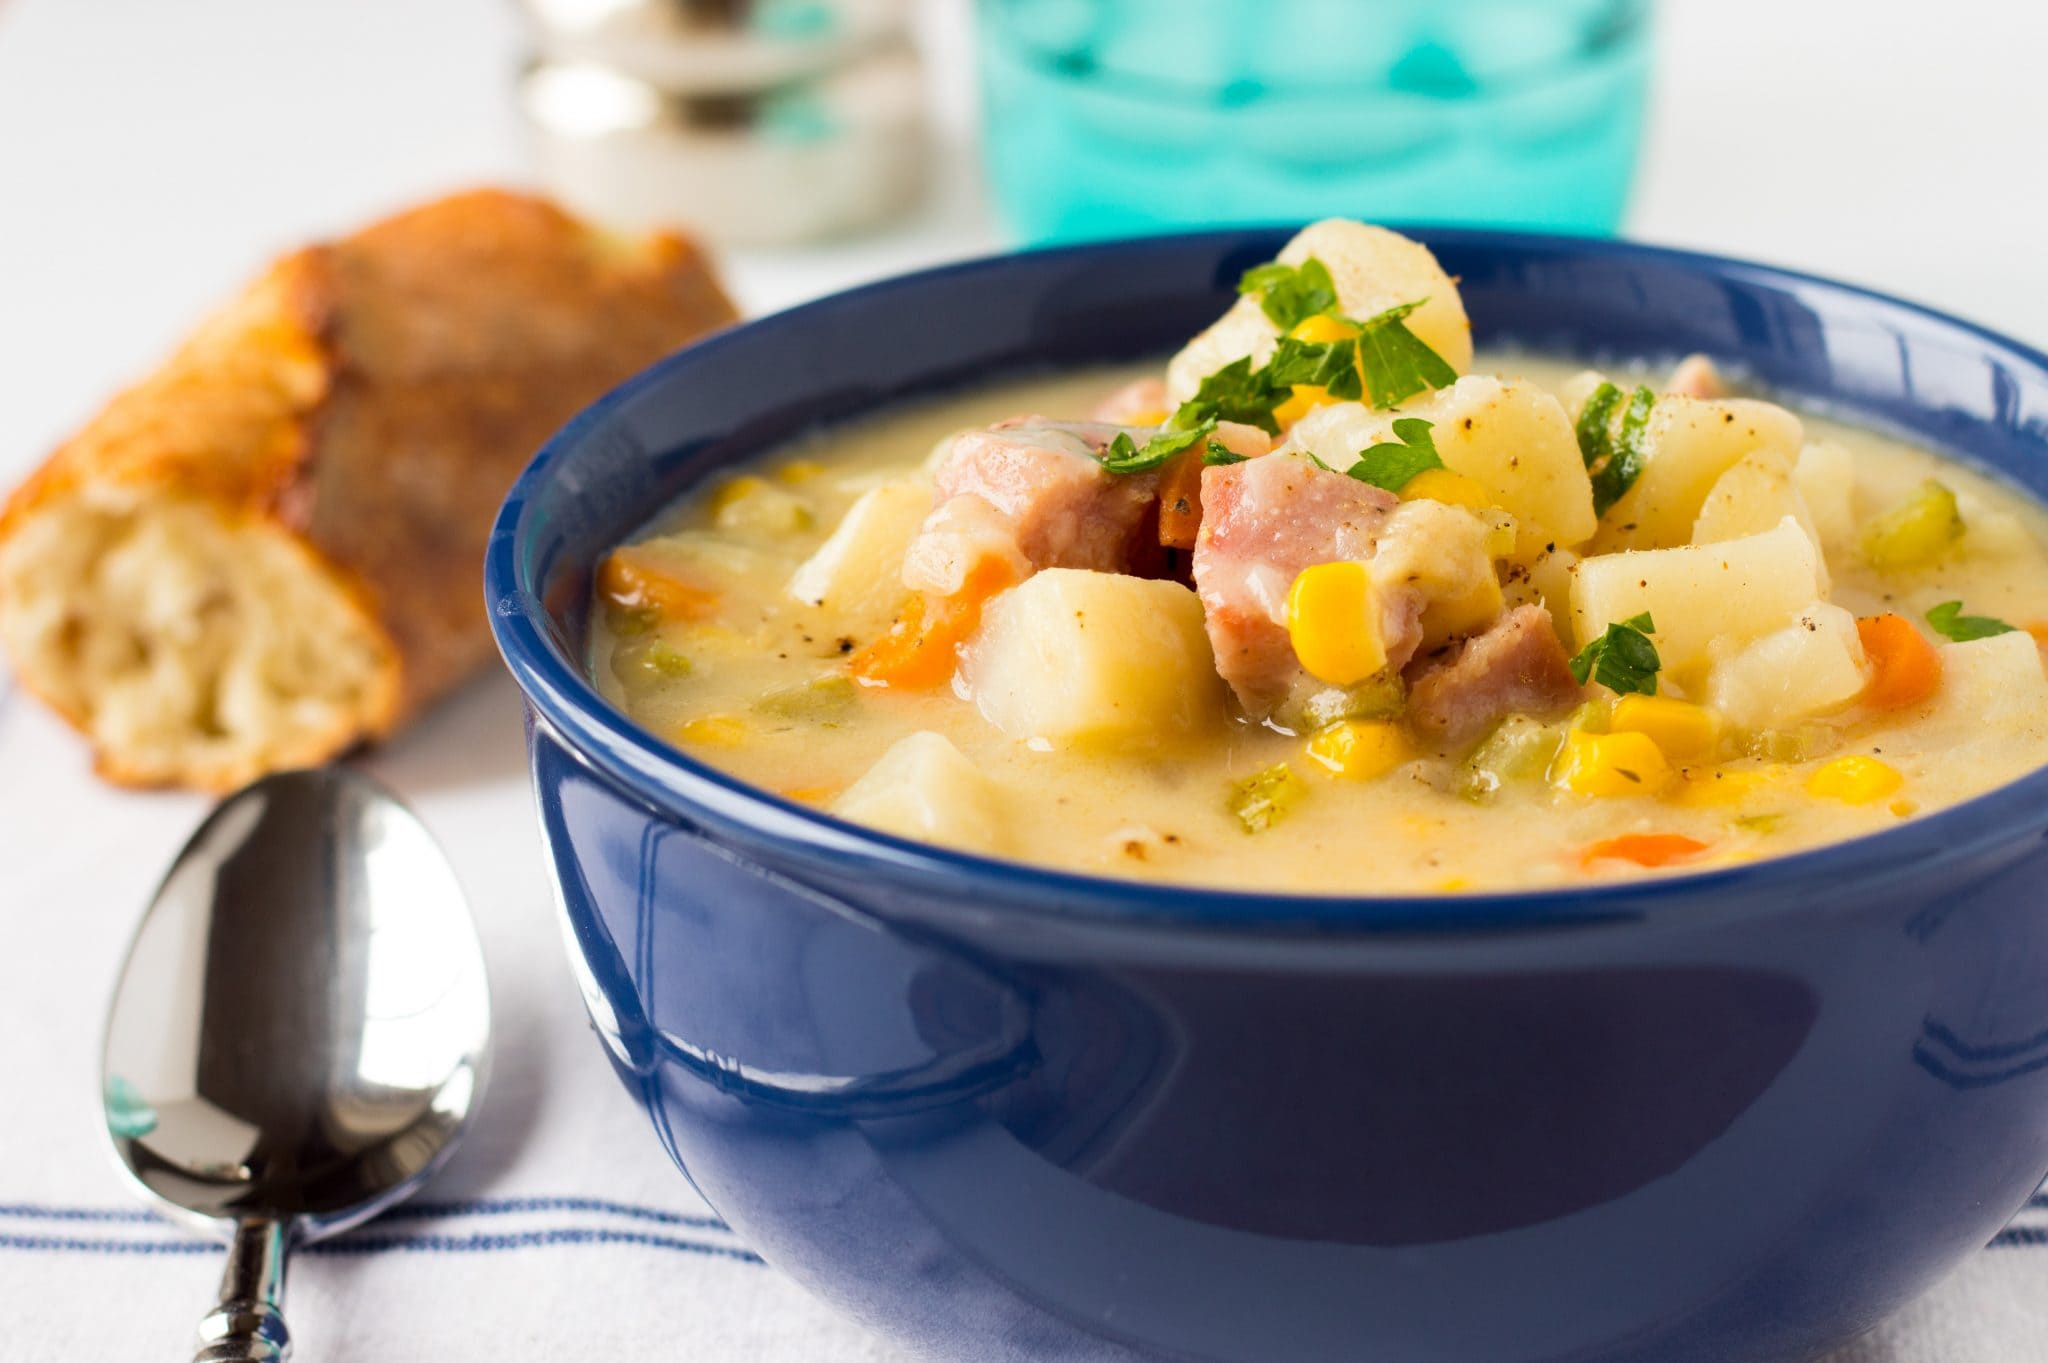 This One Pot Ham, Potato and Corn Chowder is a tasty, hearty soup full of vegetables to make with leftover ham. This soup is the ultimate comfort food!